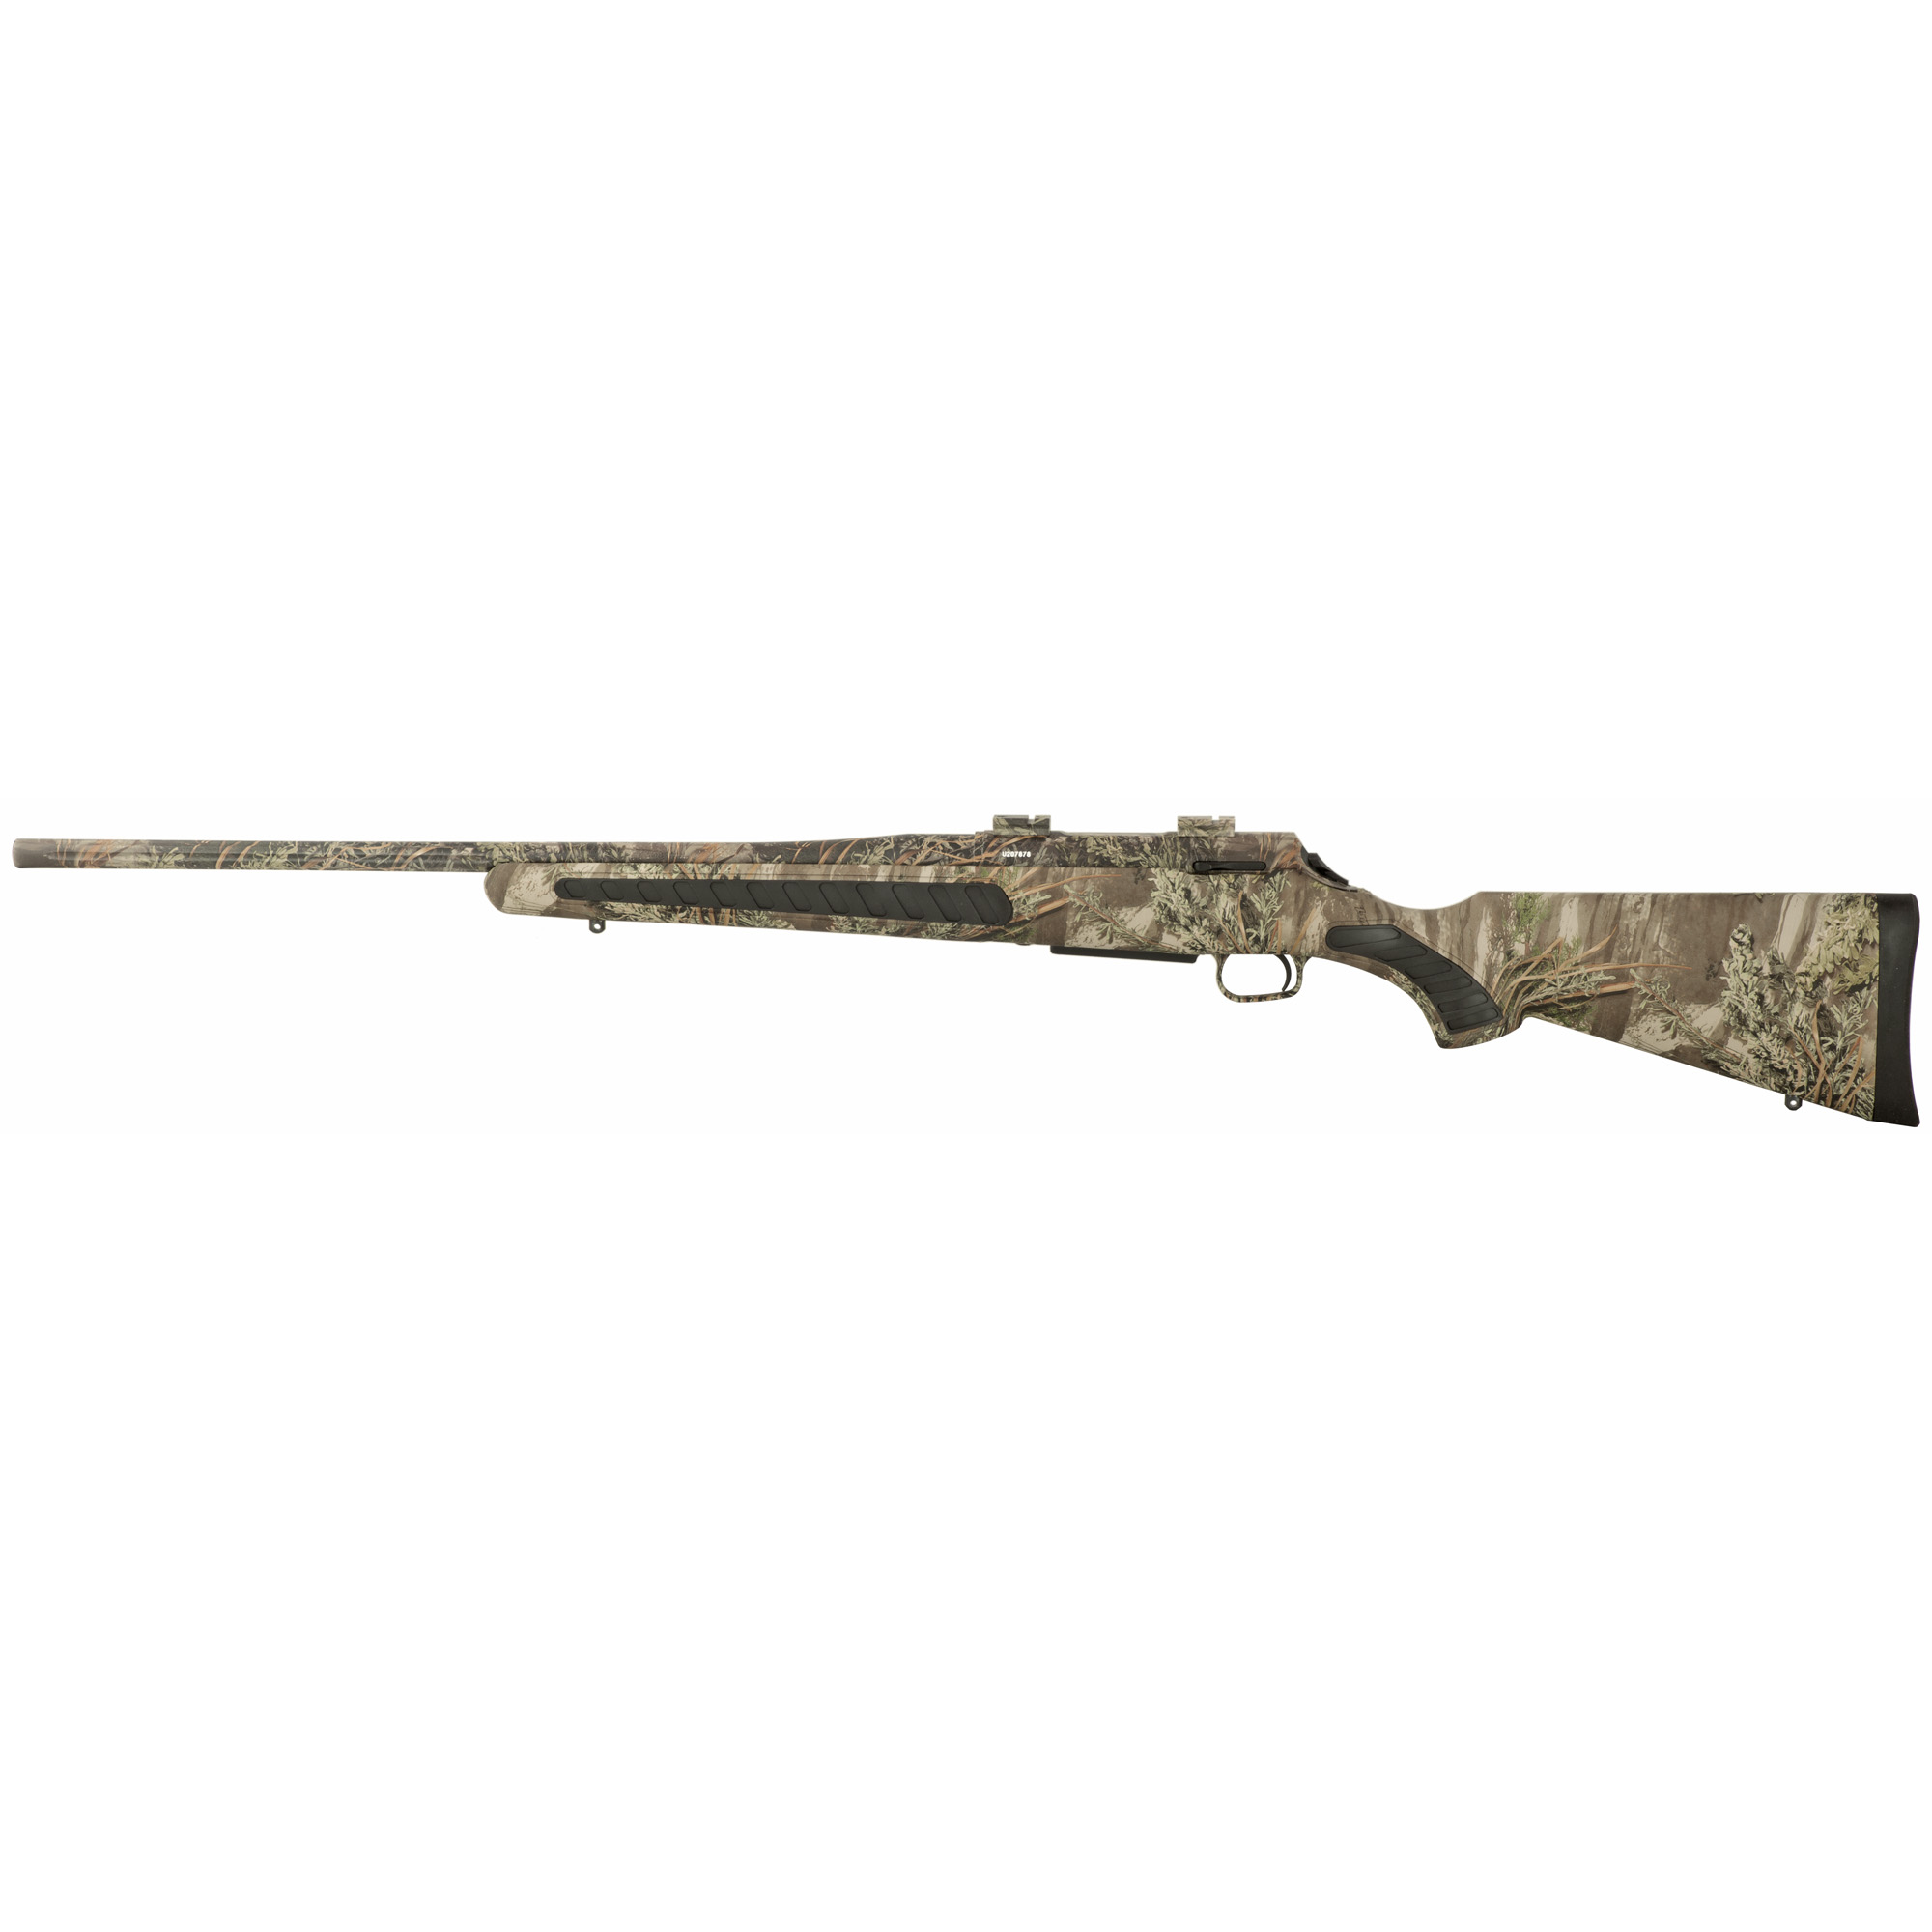 """When nature's toughest predators become your prey"""" you can trust the lightweight T/C Venture Predator to give you the concealment"""" ruggedness"""" and accuracy you need to make the perfect shot. The T/C Venture Predator rifle is available in Realtree(R) Advantage HD Max-1(R) and Realtree(R) AP HD(R)Snow camo and features T/C's MOA accuracy guarantee."""